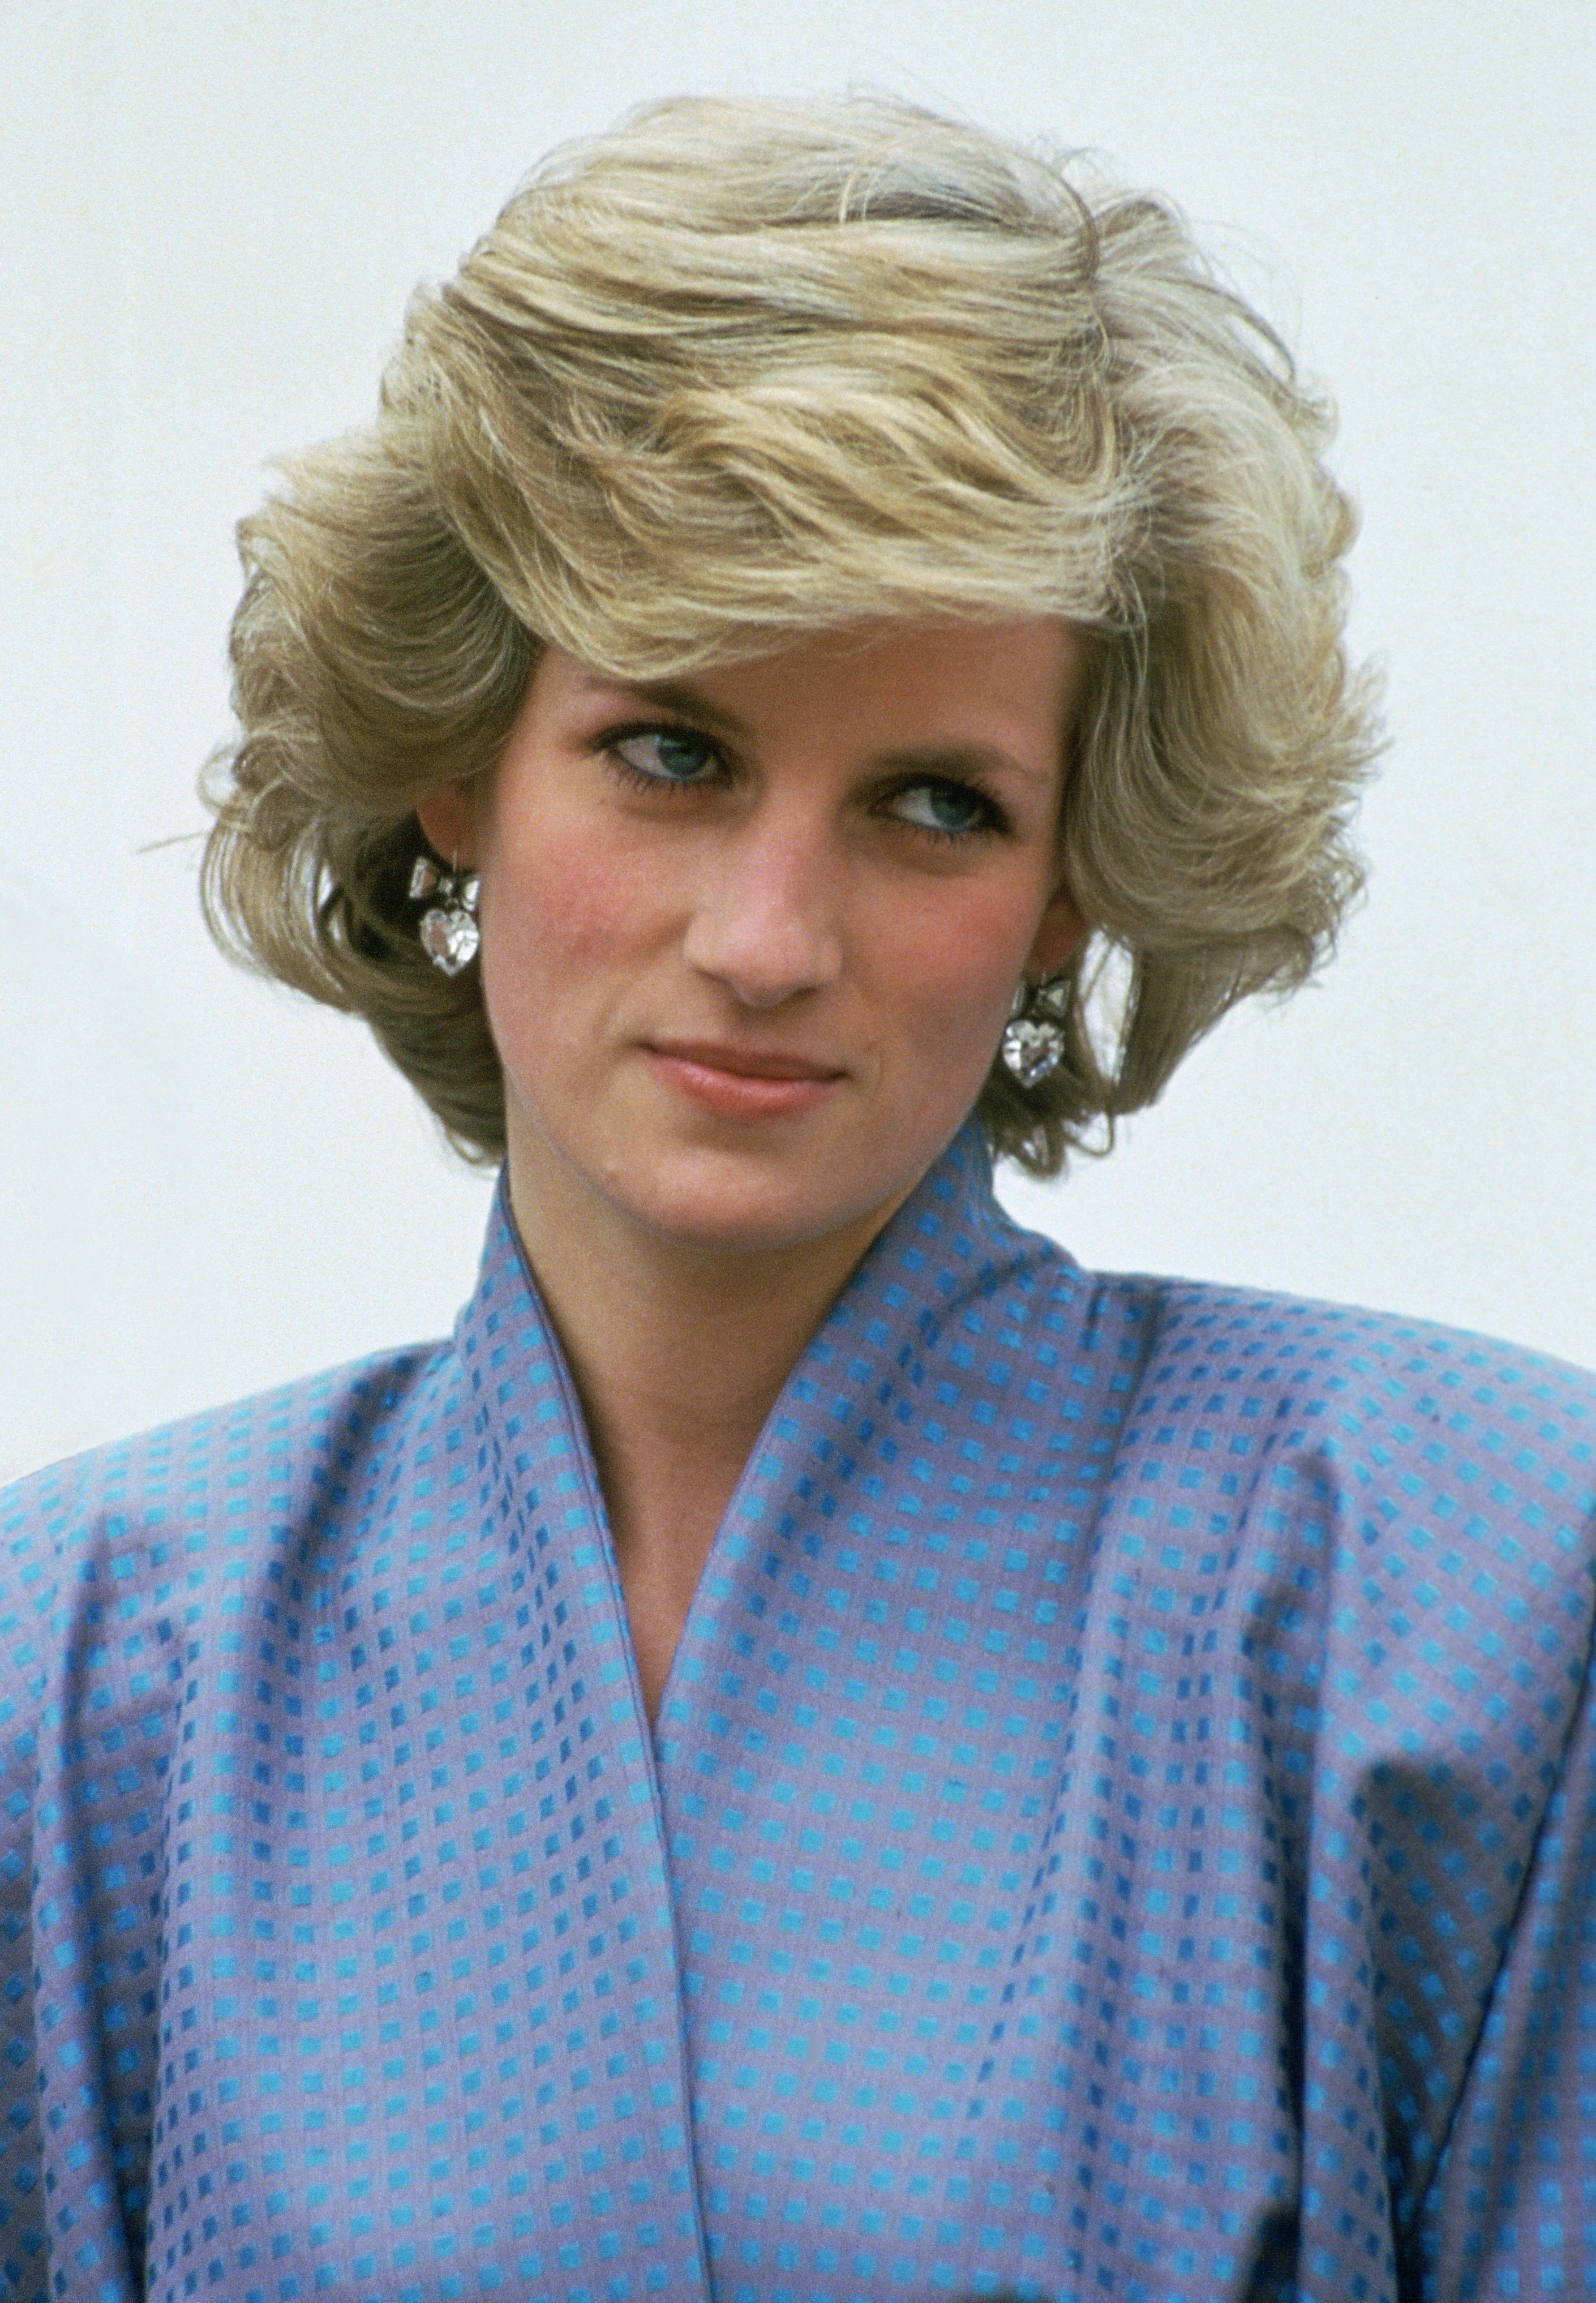 Princess Diana on an official overseas visit to Italy on April 22, 1985. | Source: Getty Images